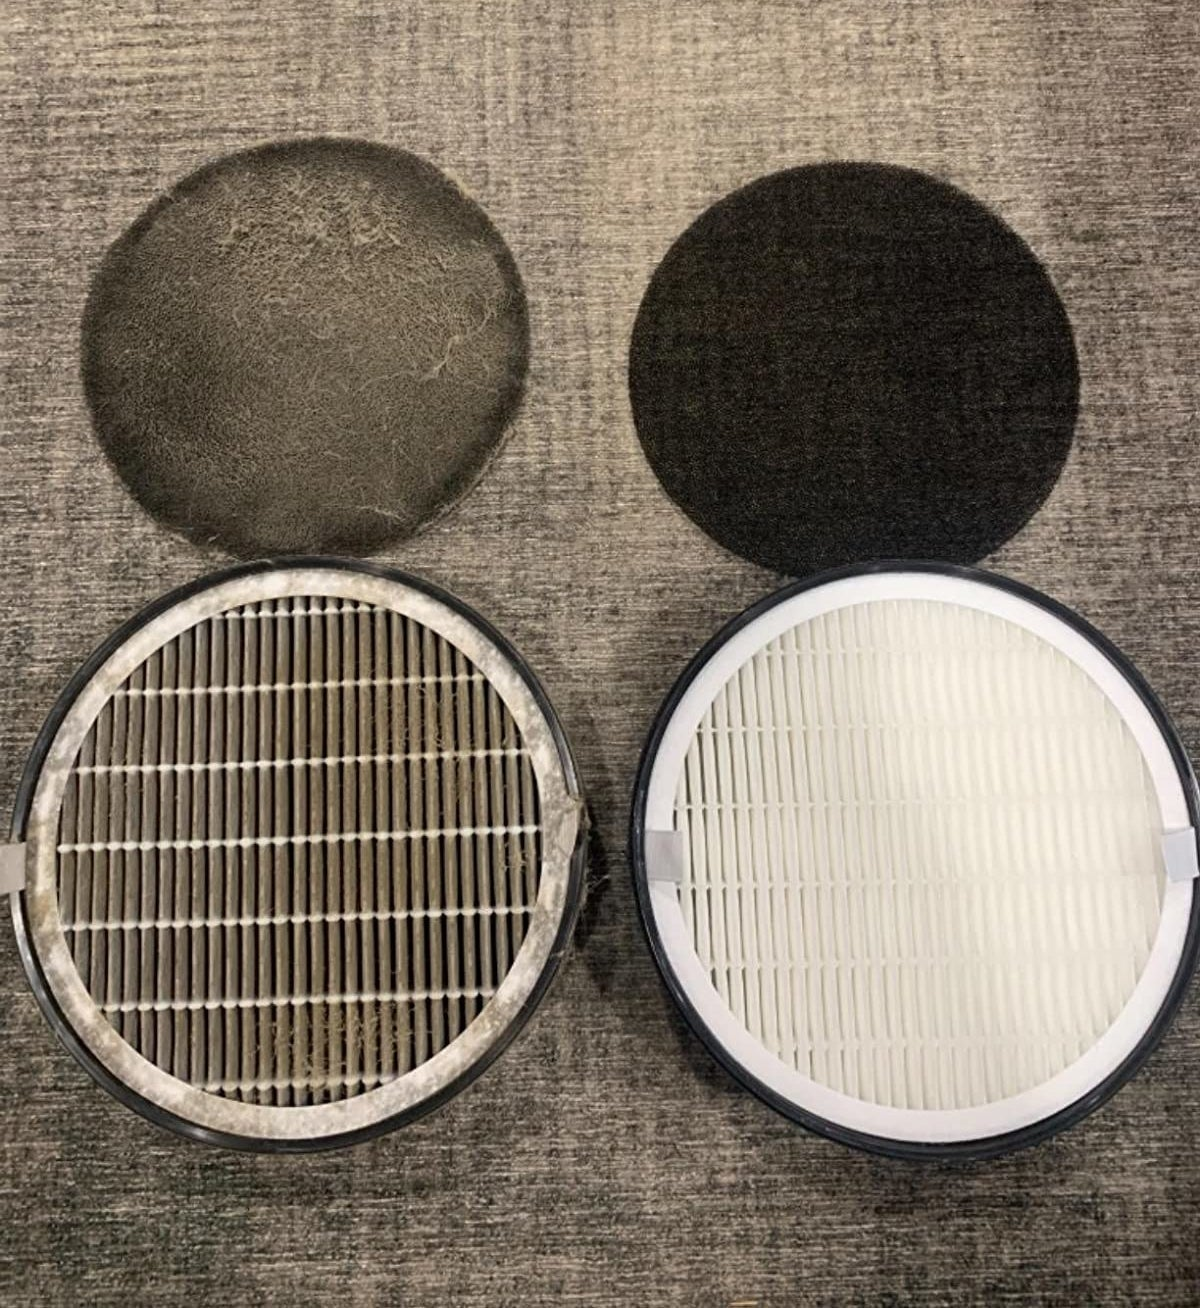 Reviewer's photo of their dirty filter after use on the left and a clean filter on the right